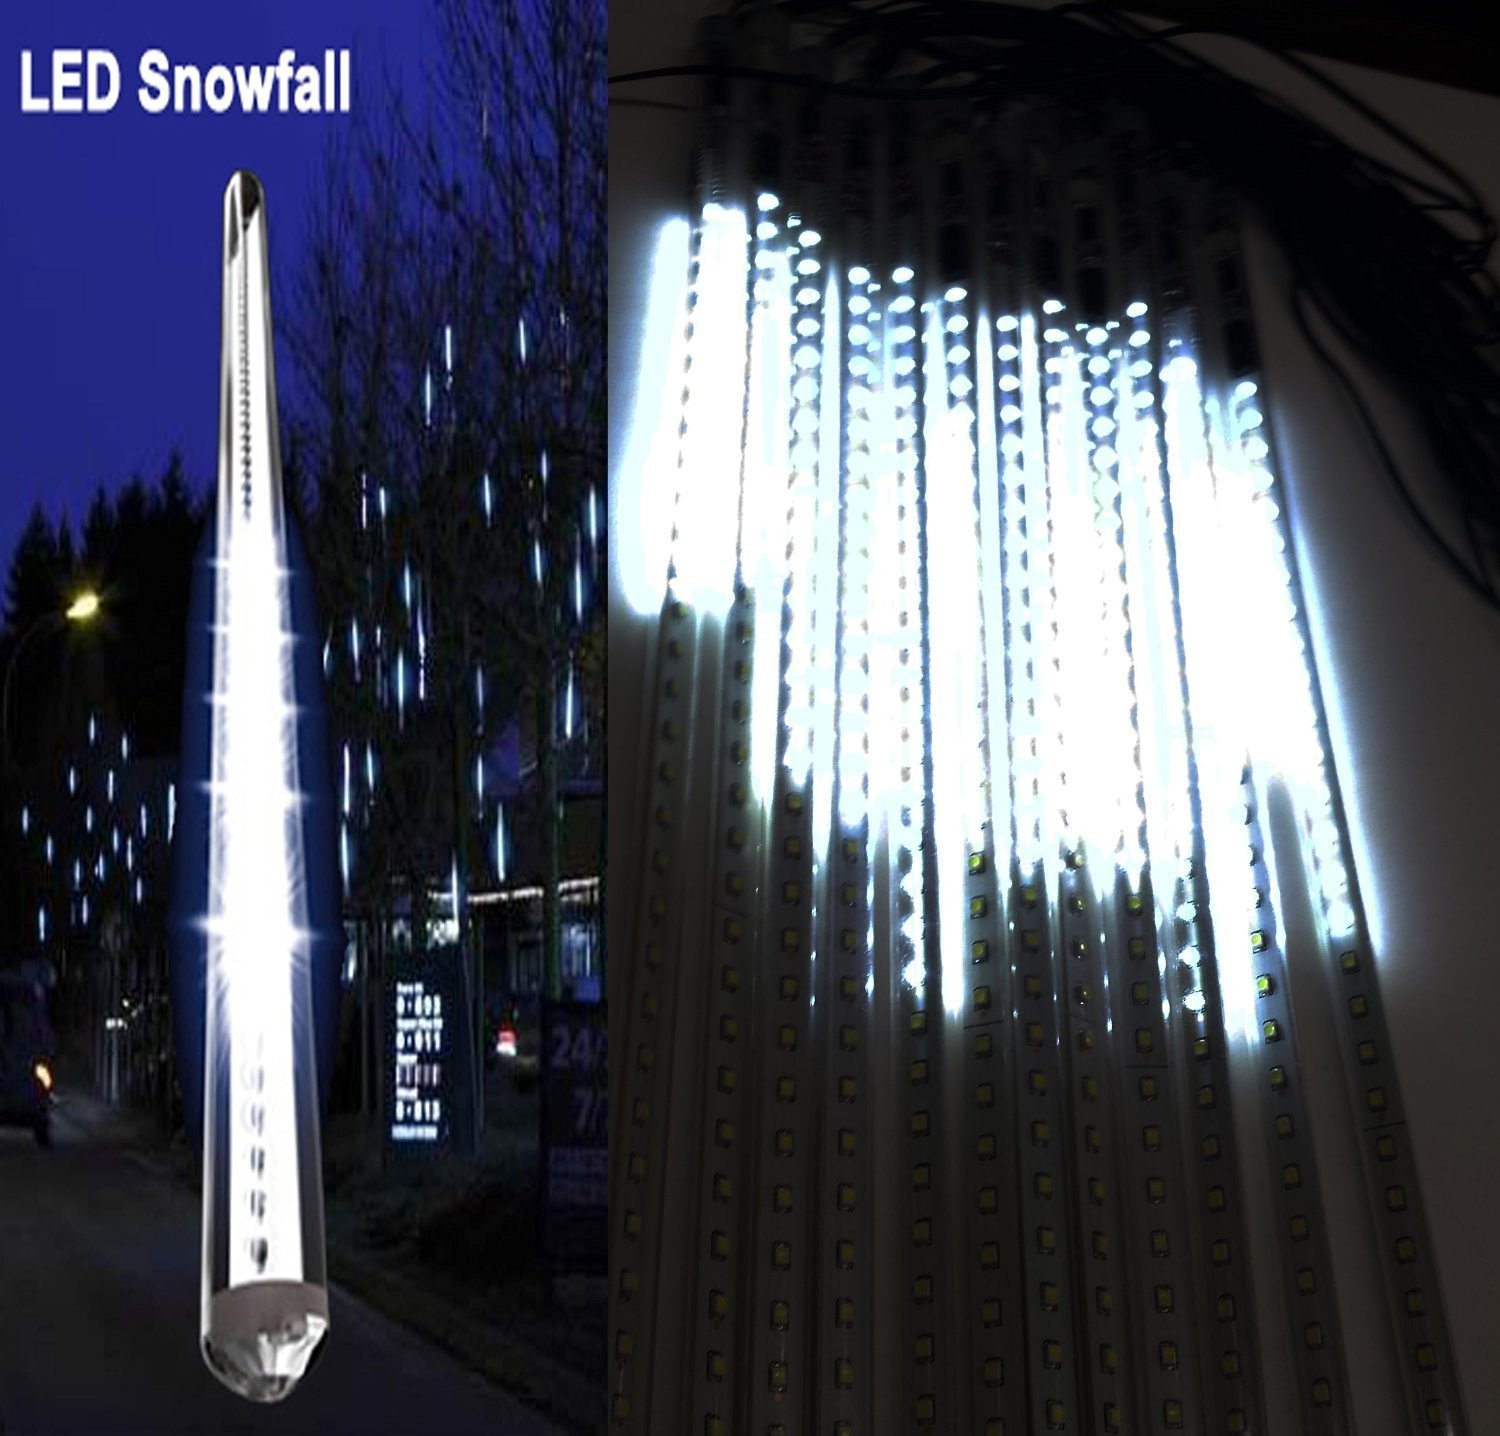 4-Pack 20 Inches Linkable Snow White LED Snowfall Lights Double Sided Waterproof Transformer 16Ft Wire Extension Set of 12, Link Up to 3 Sets of 12 tubes…